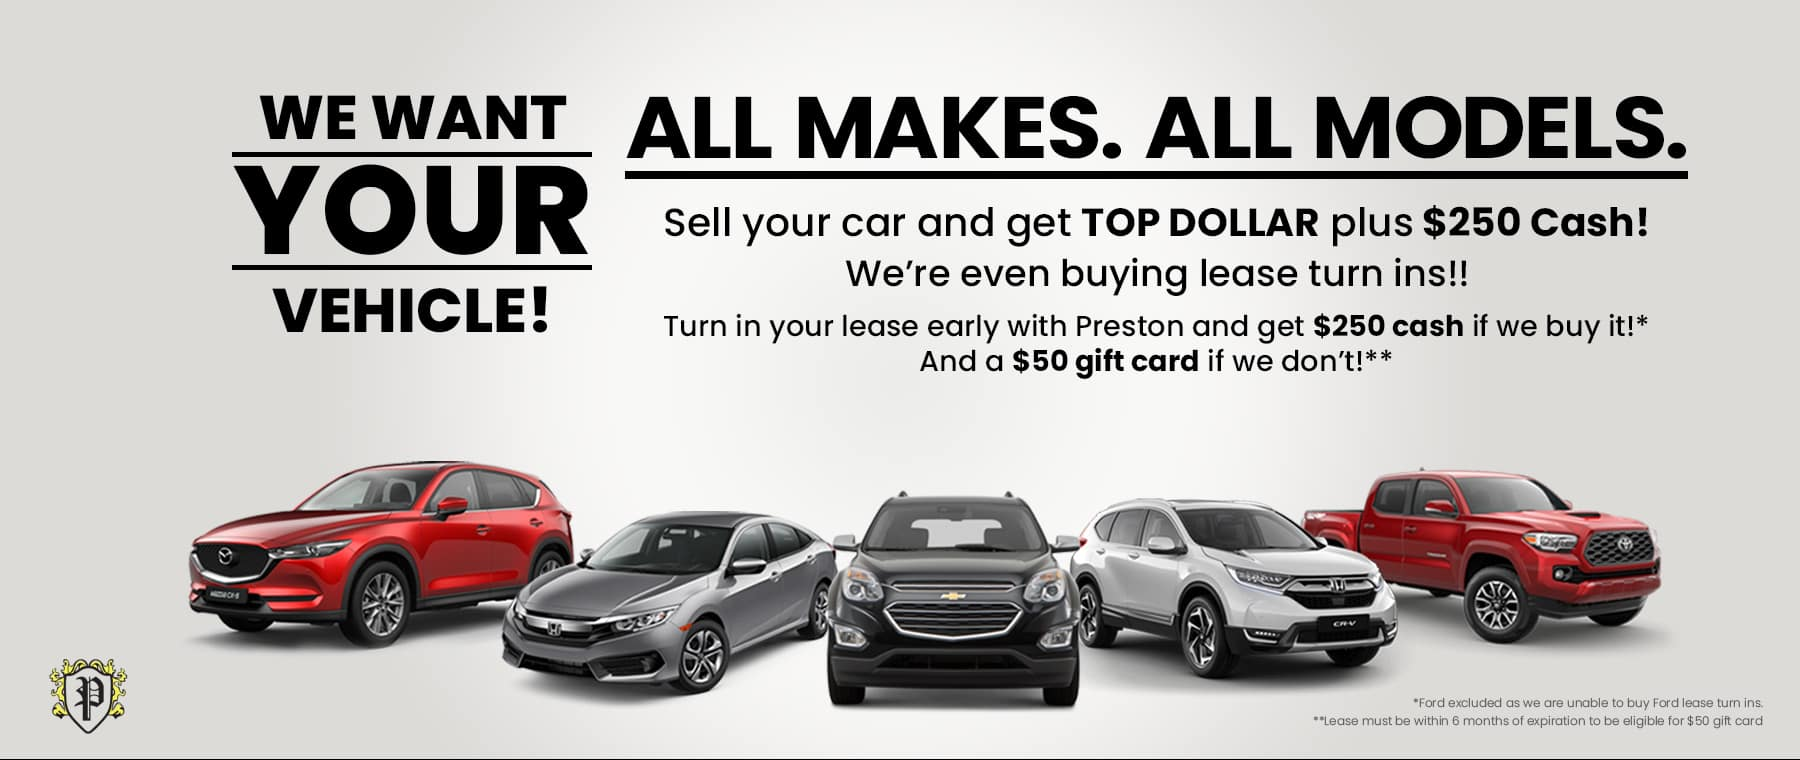 We Want Your Car Banner 1800×760